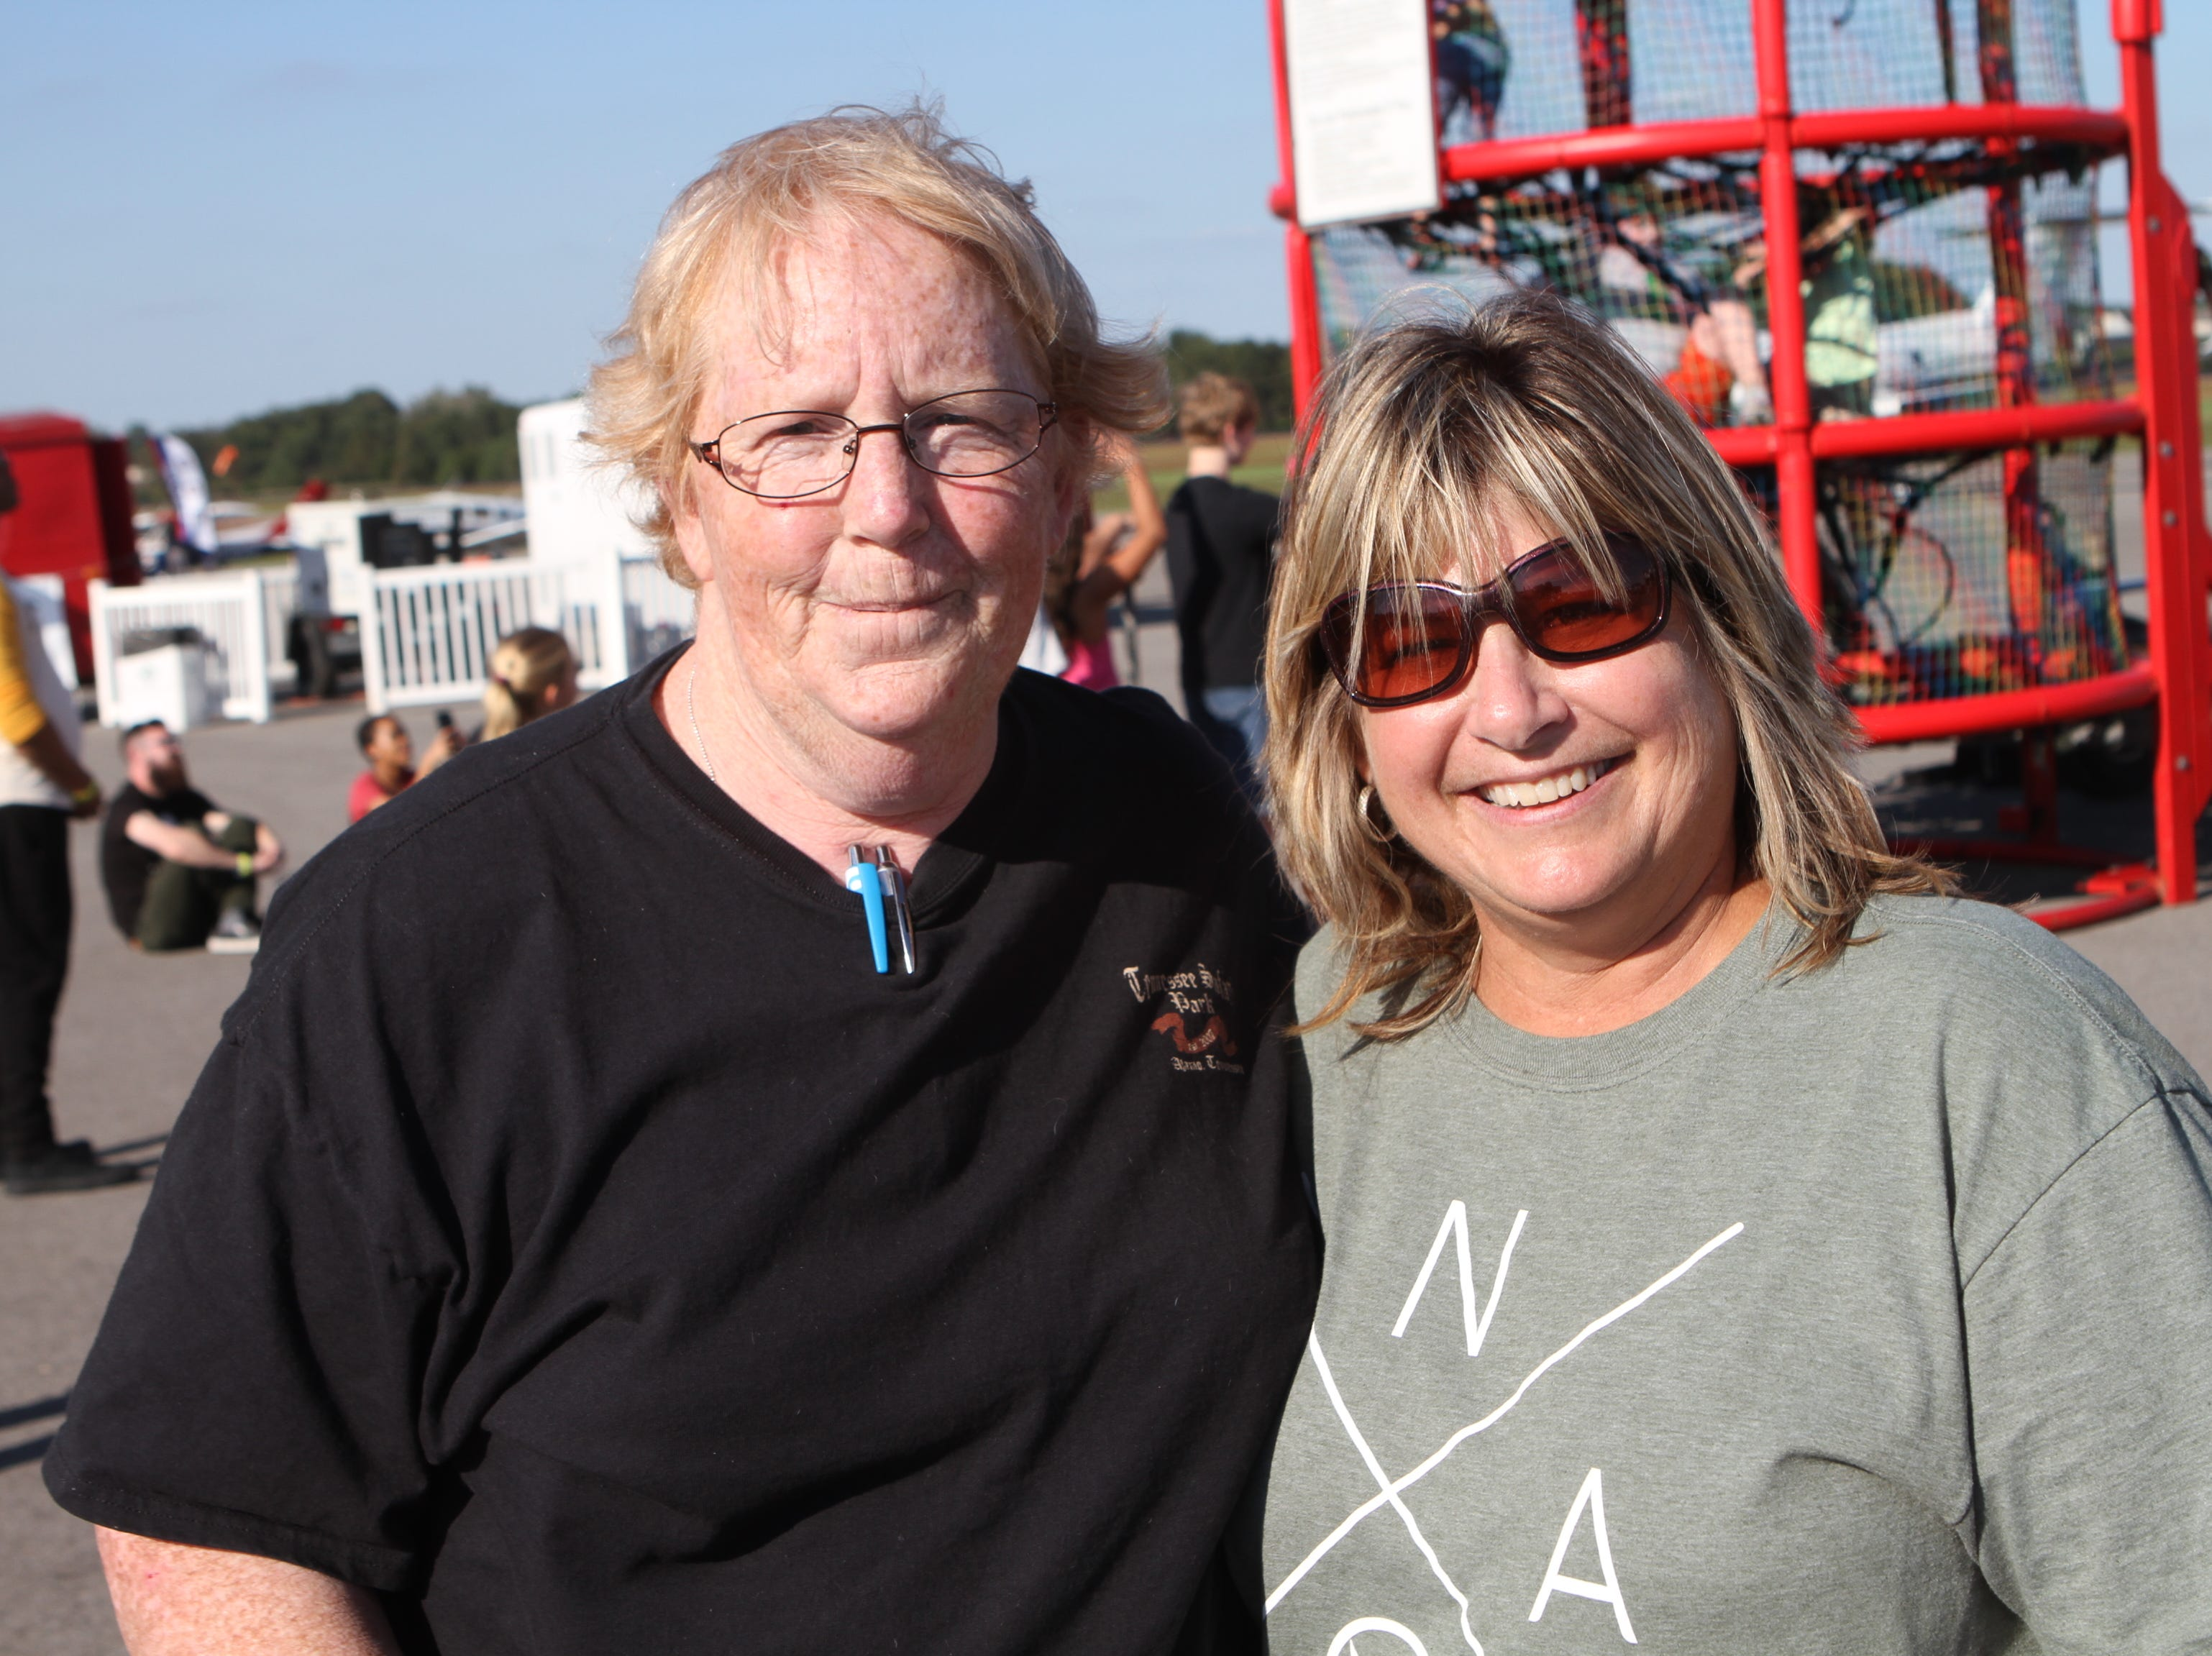 Patty Eads and Susan Anderson at Wags and Wings, a family fun and oktoberfest event to benefit the Humane Society of Clarksville-Montgomery County,  Saturday, Sept. 29, 2018.